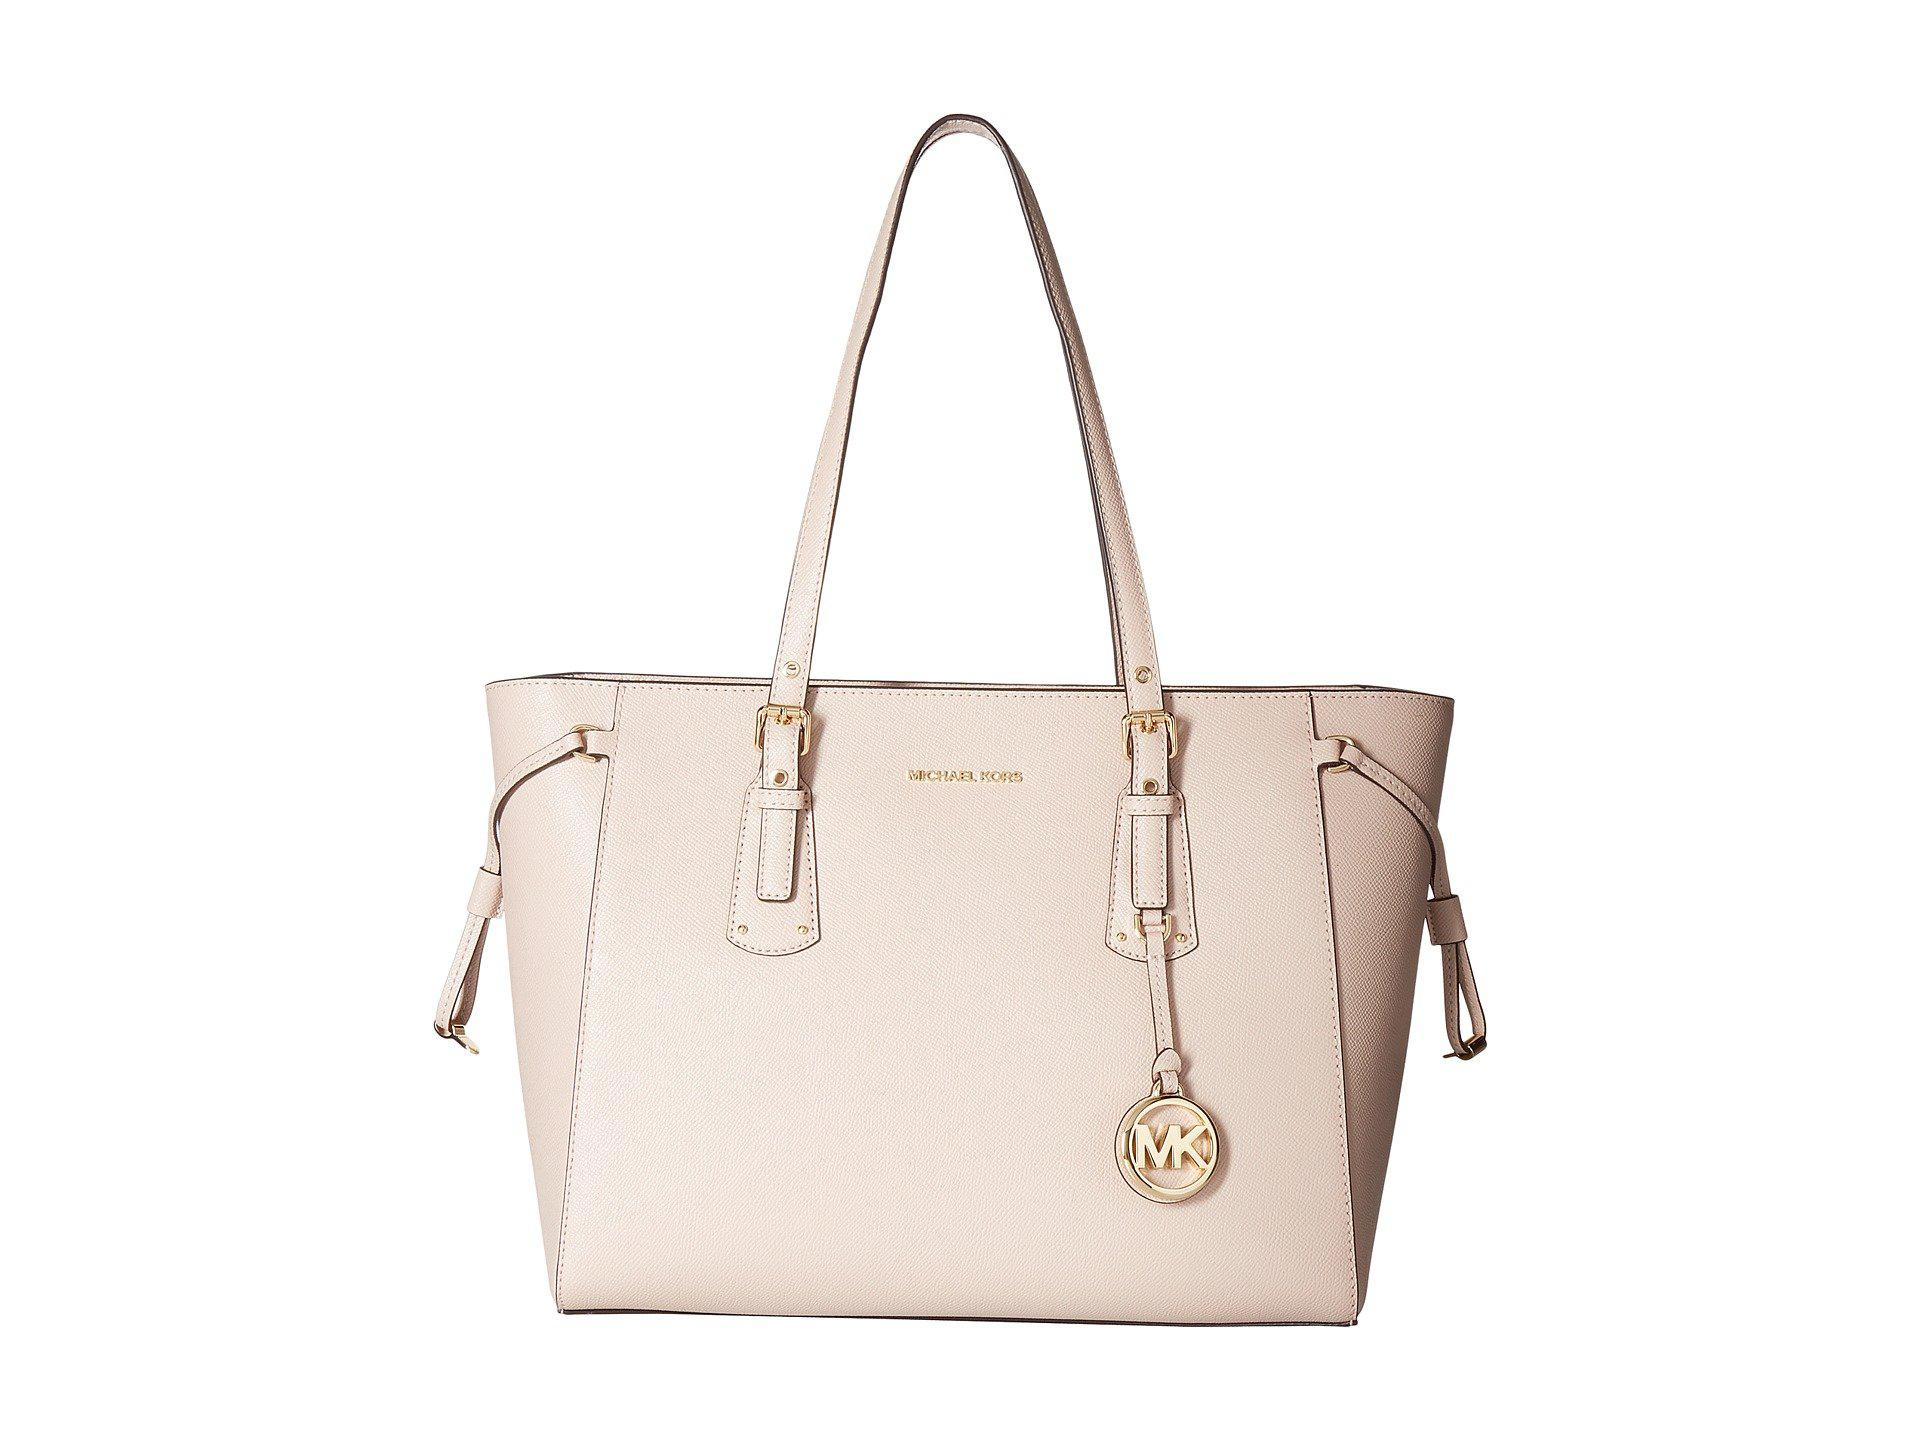 96a1386649e9 Lyst - MICHAEL Michael Kors Voyager Leather Tote Bag in Pink - Save 29%